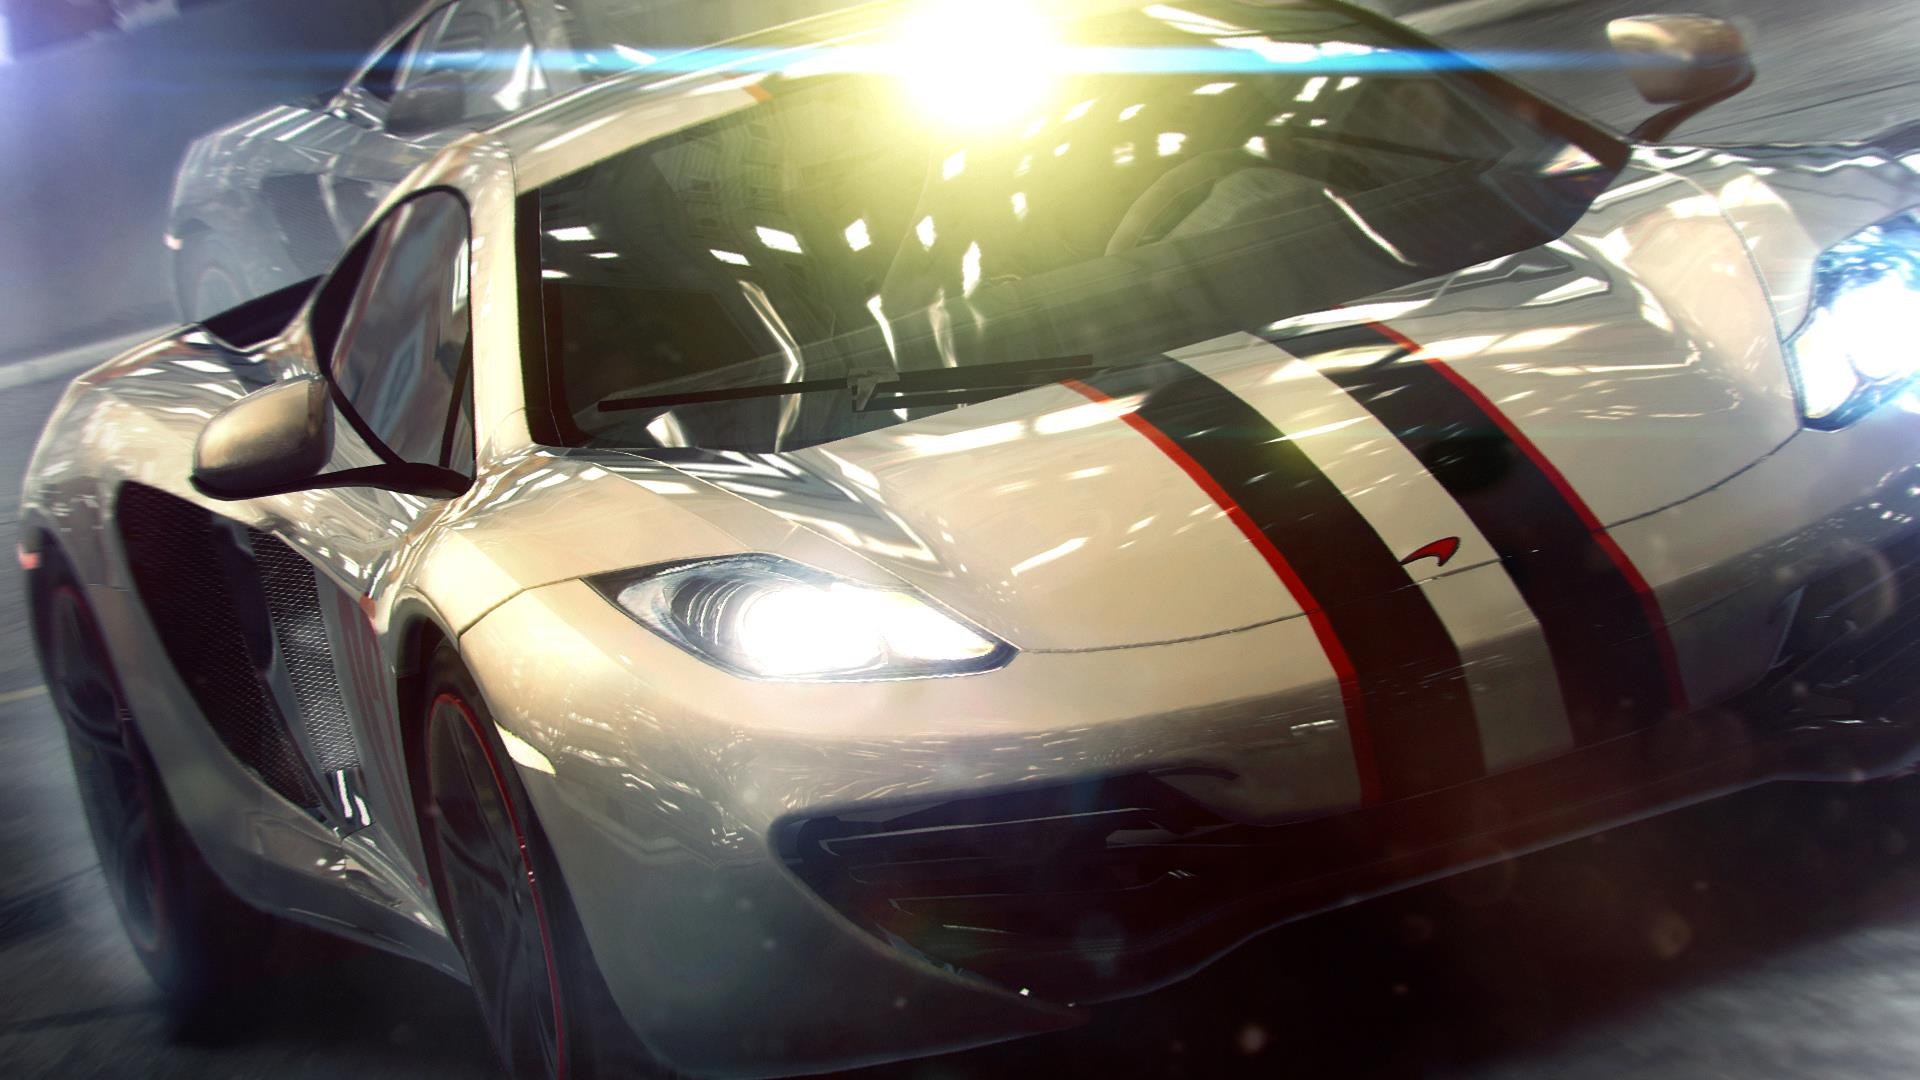 GRID 2 News: Four New GRID 2 Screenshots Released